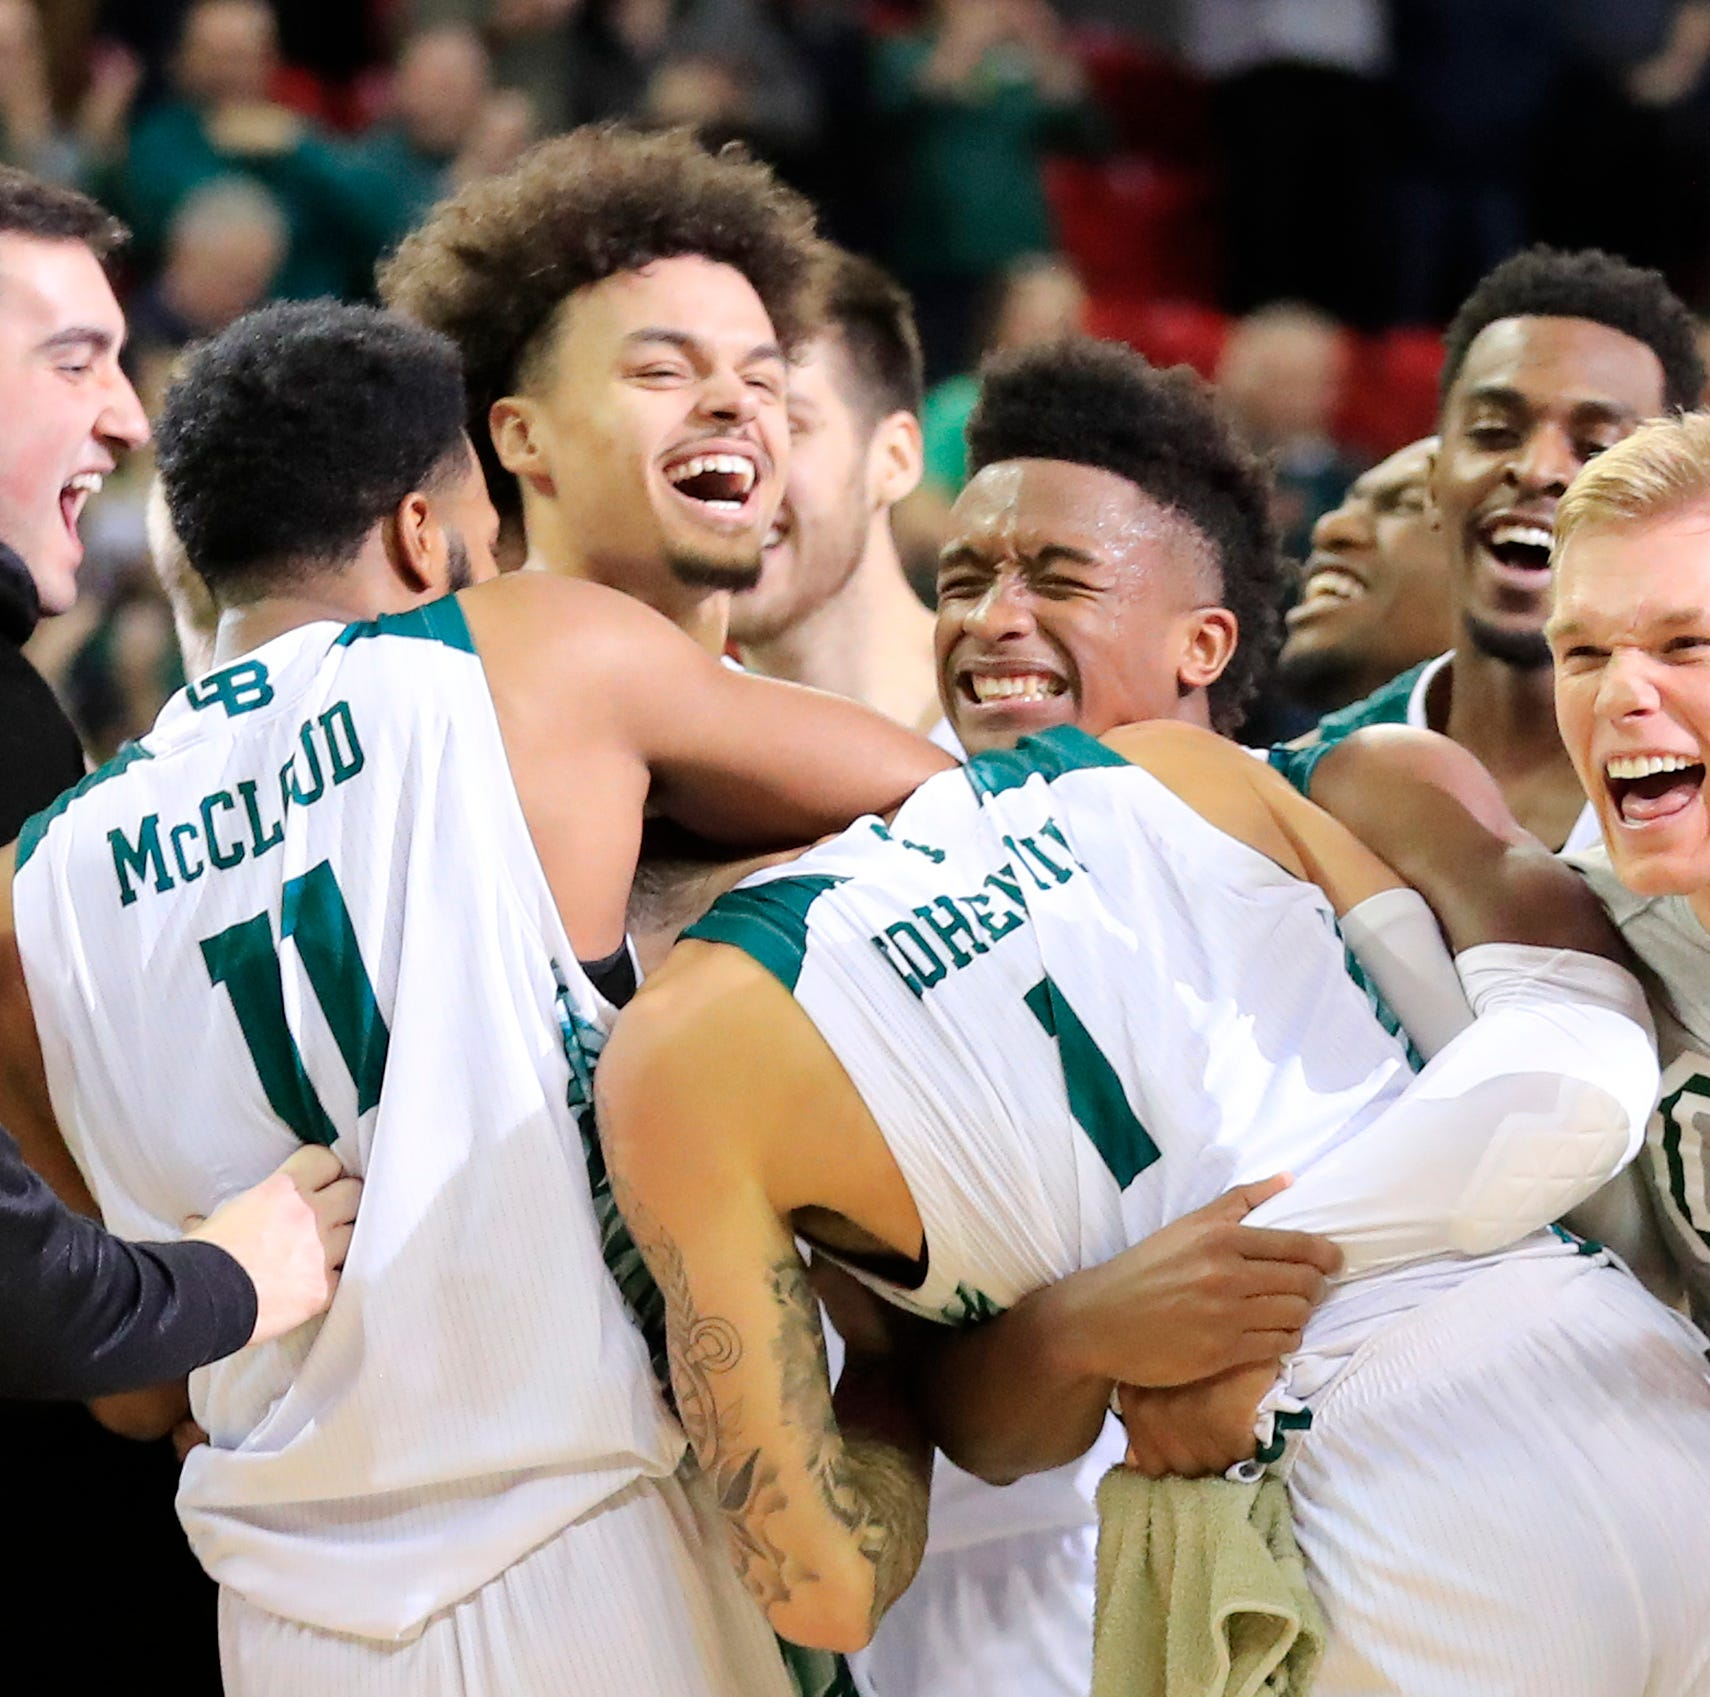 UWGB men to host FIU in second round of CIT